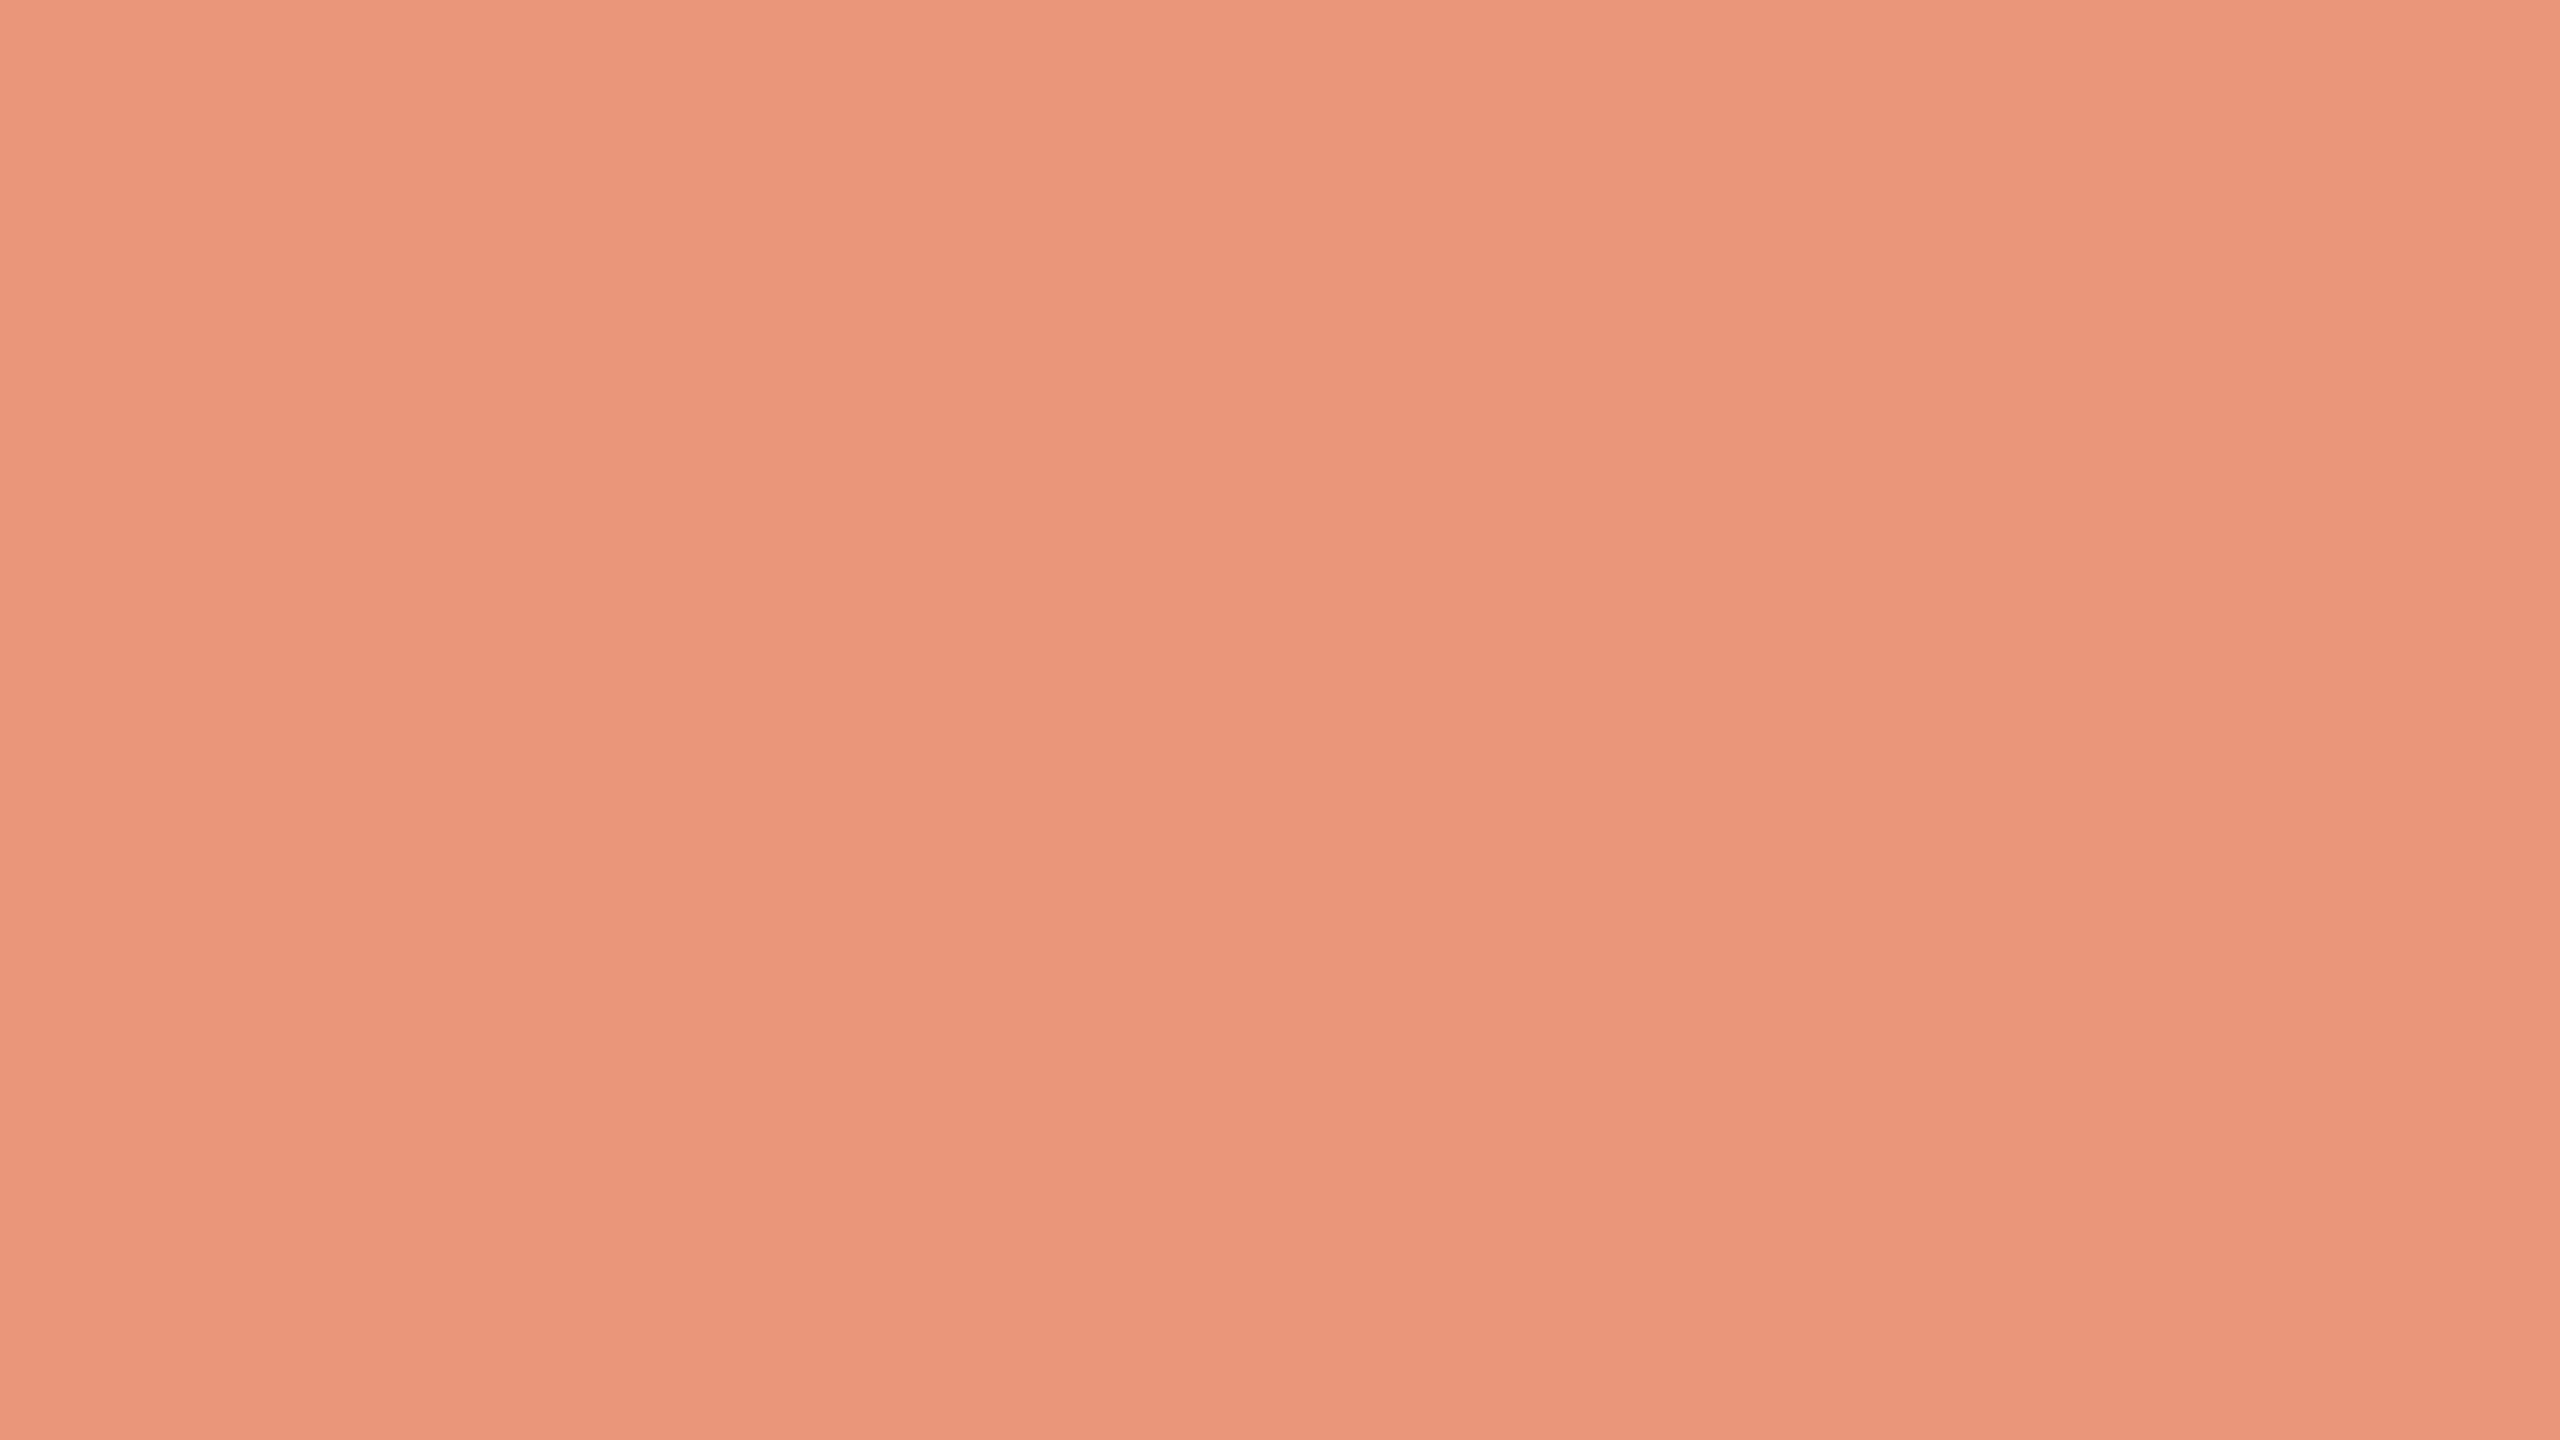 2560x1440 Dark Salmon Solid Color Background